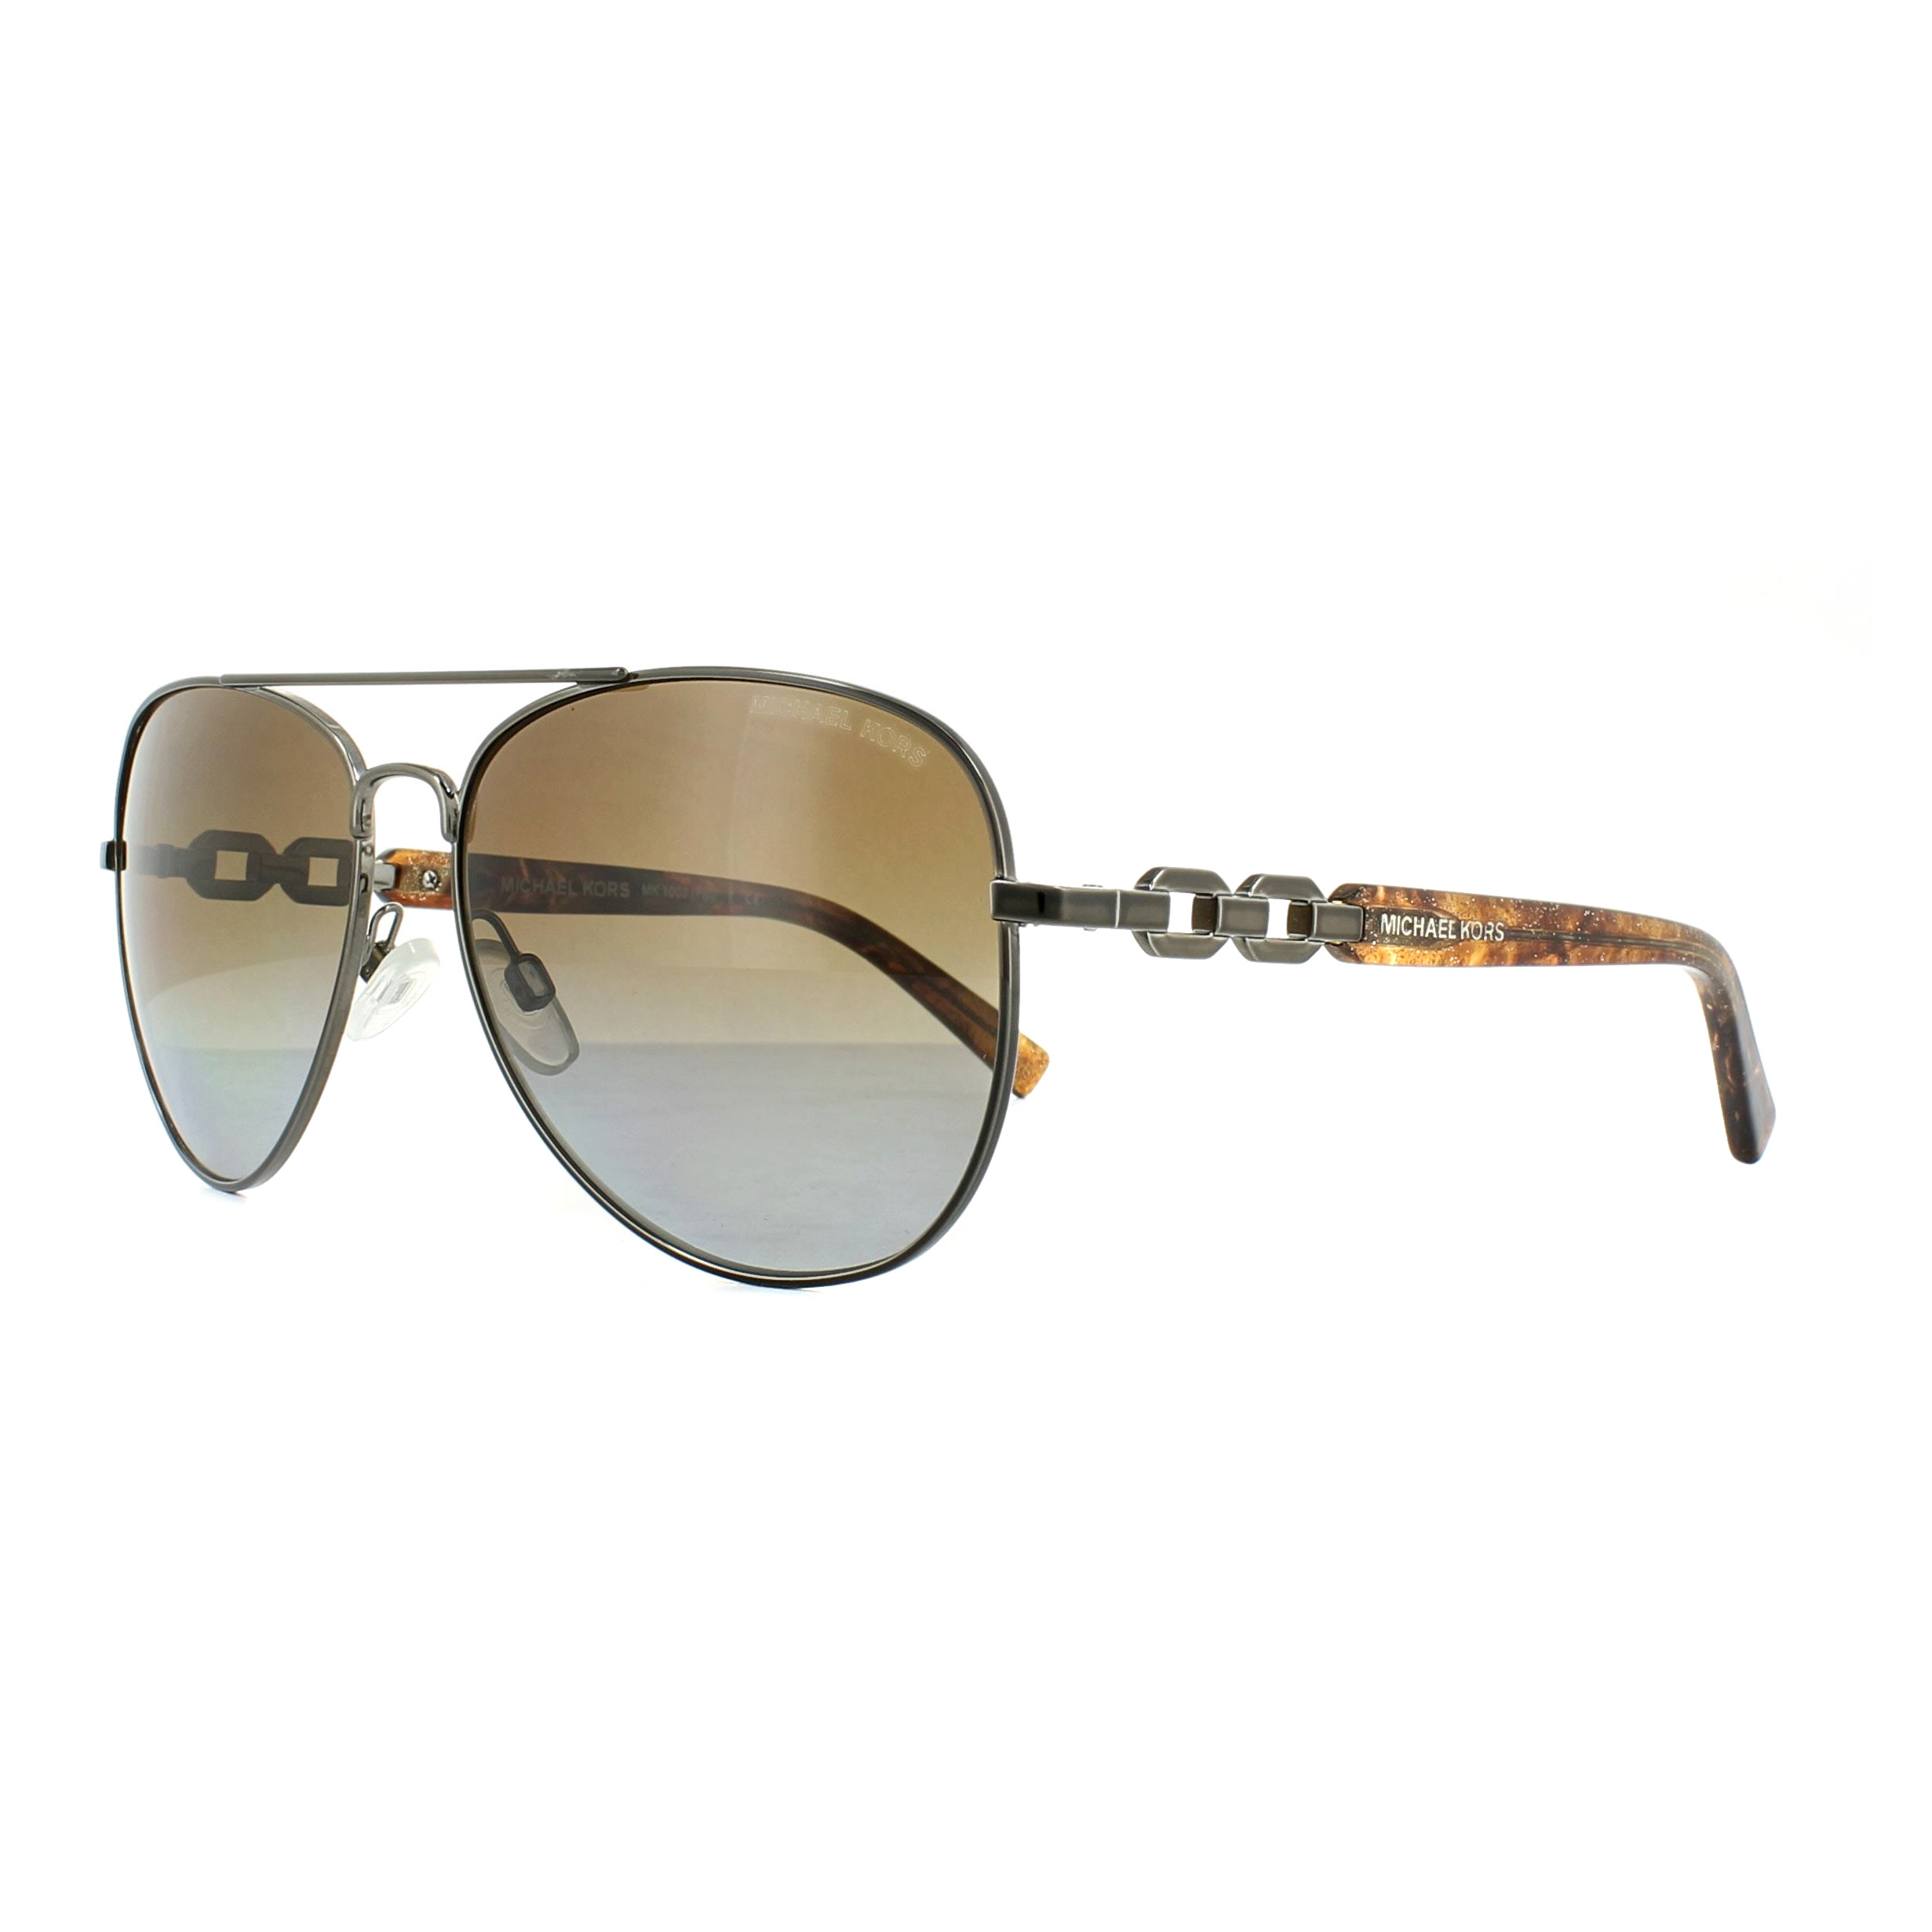 cf7c6548563 Sentinel Michael Kors Sunglasses Fiji 1003 1002T5 Gunmetal Brown Gradient  Polarized